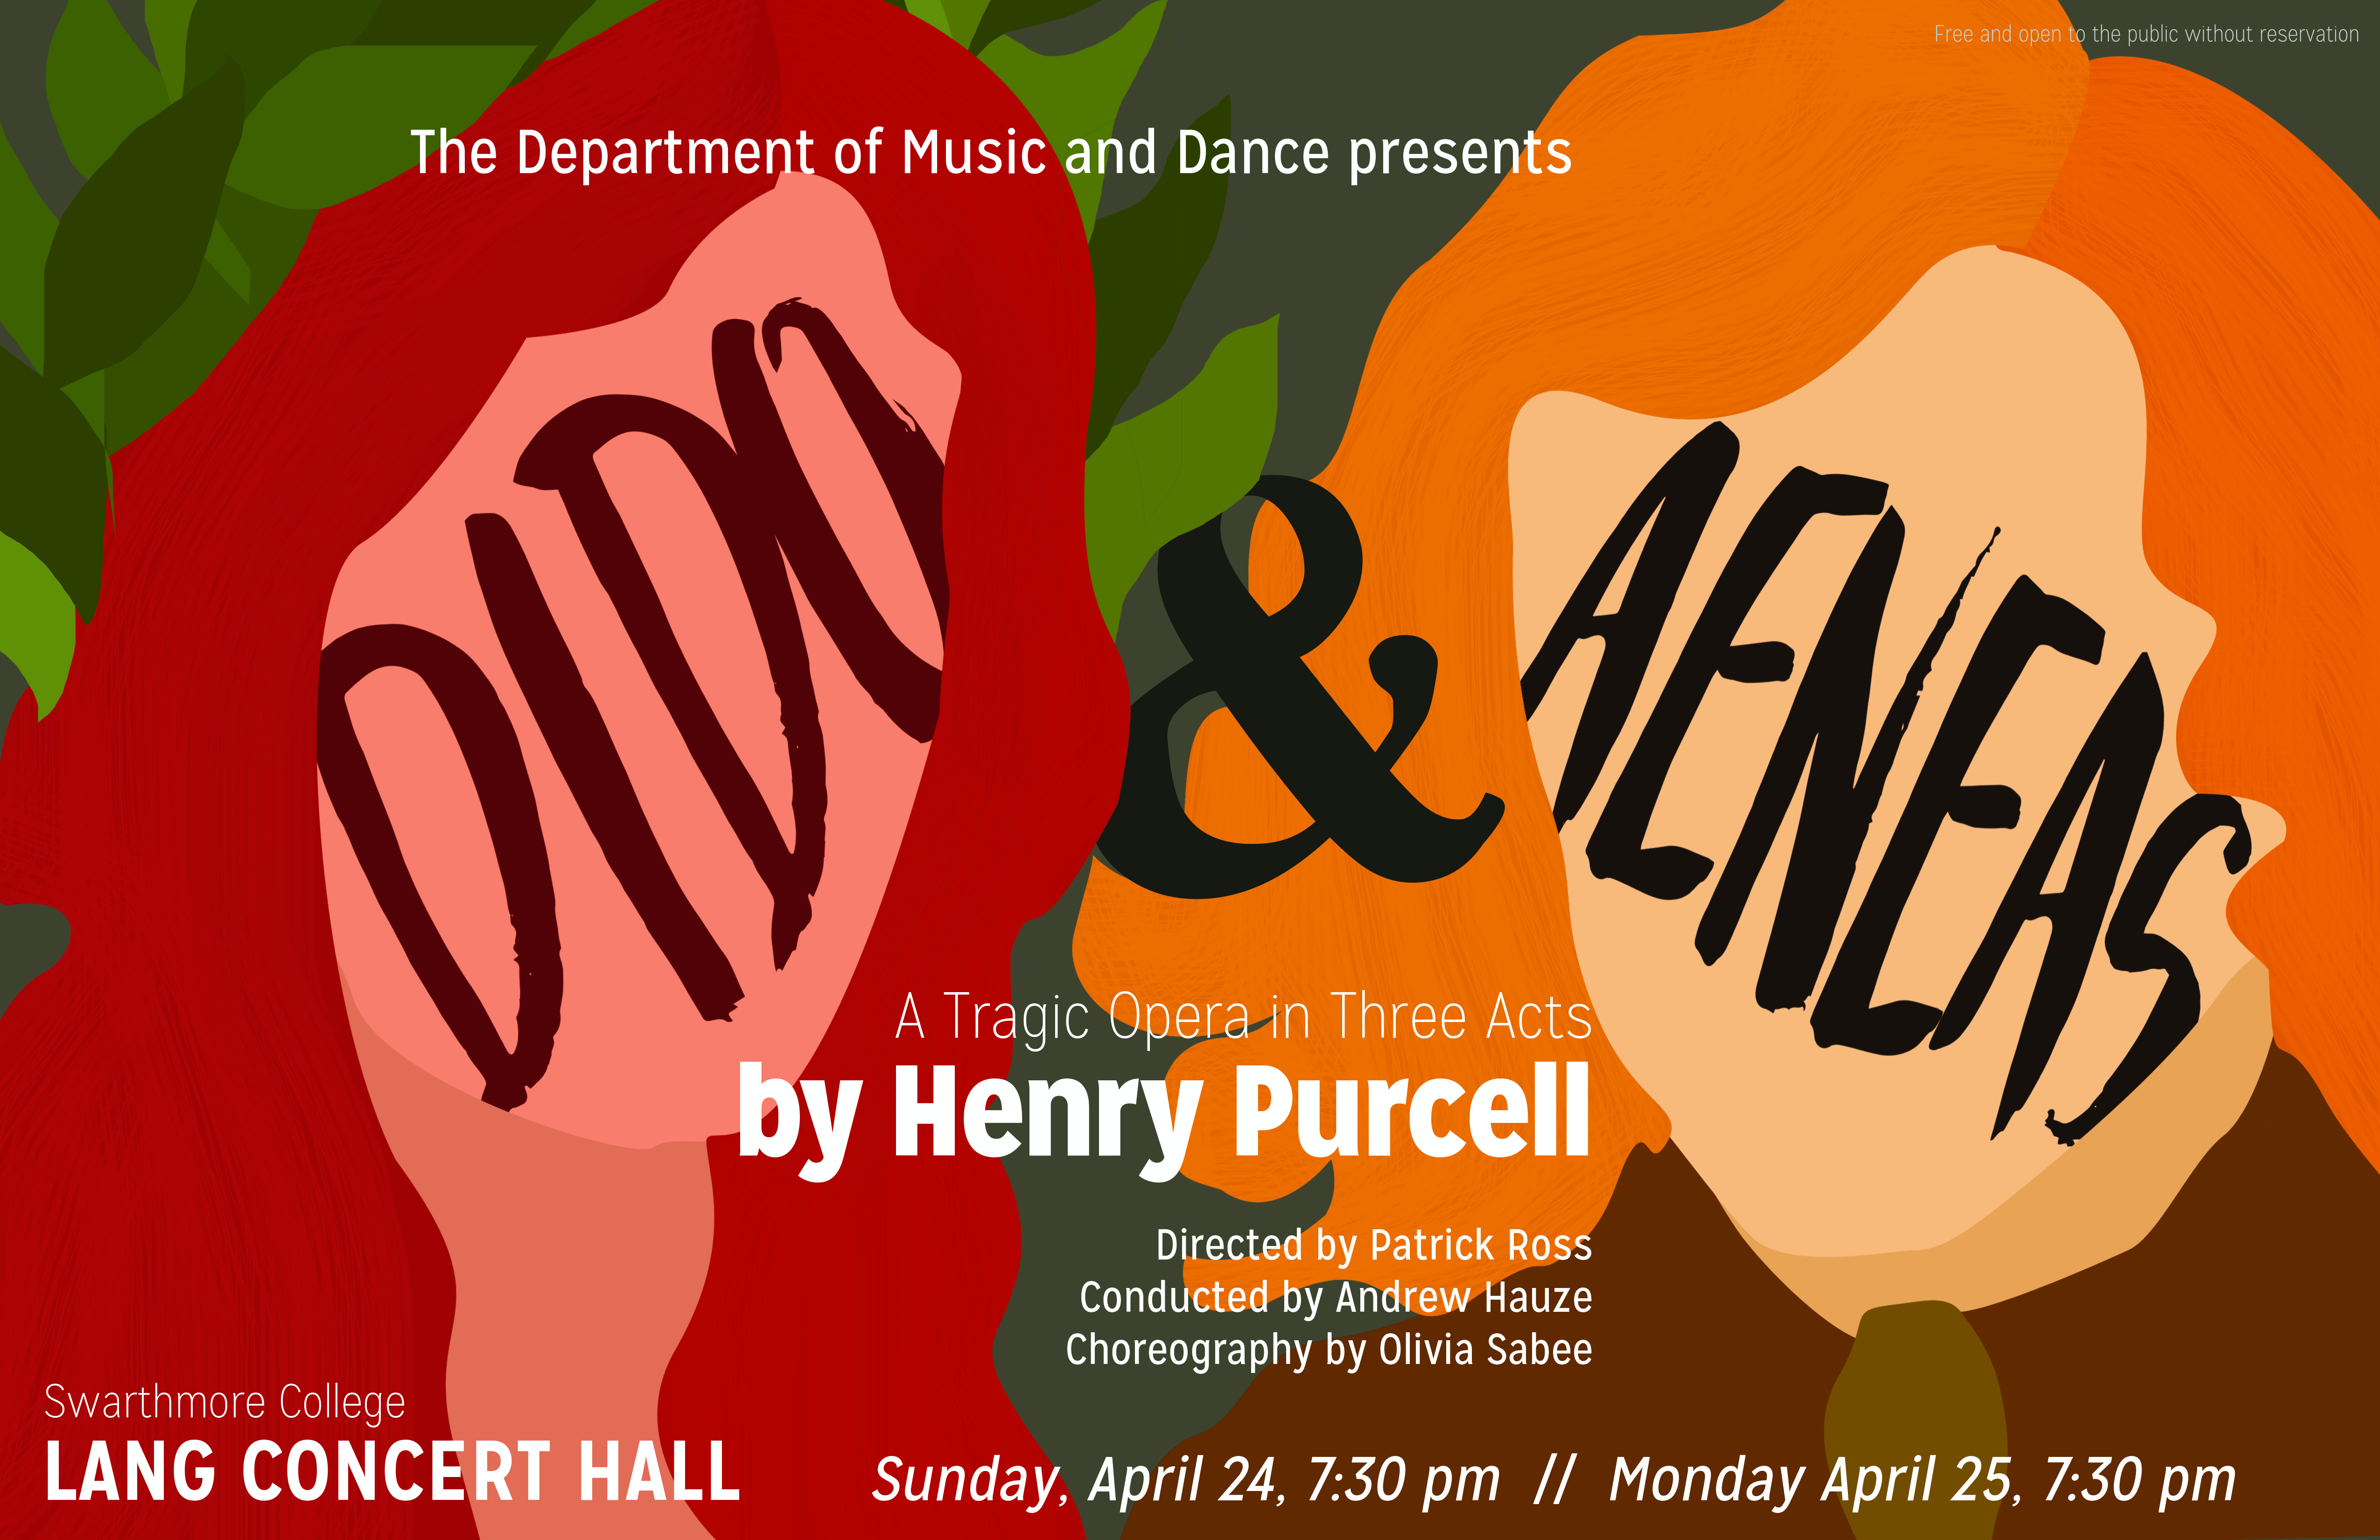 poster for Dido and Aeneas